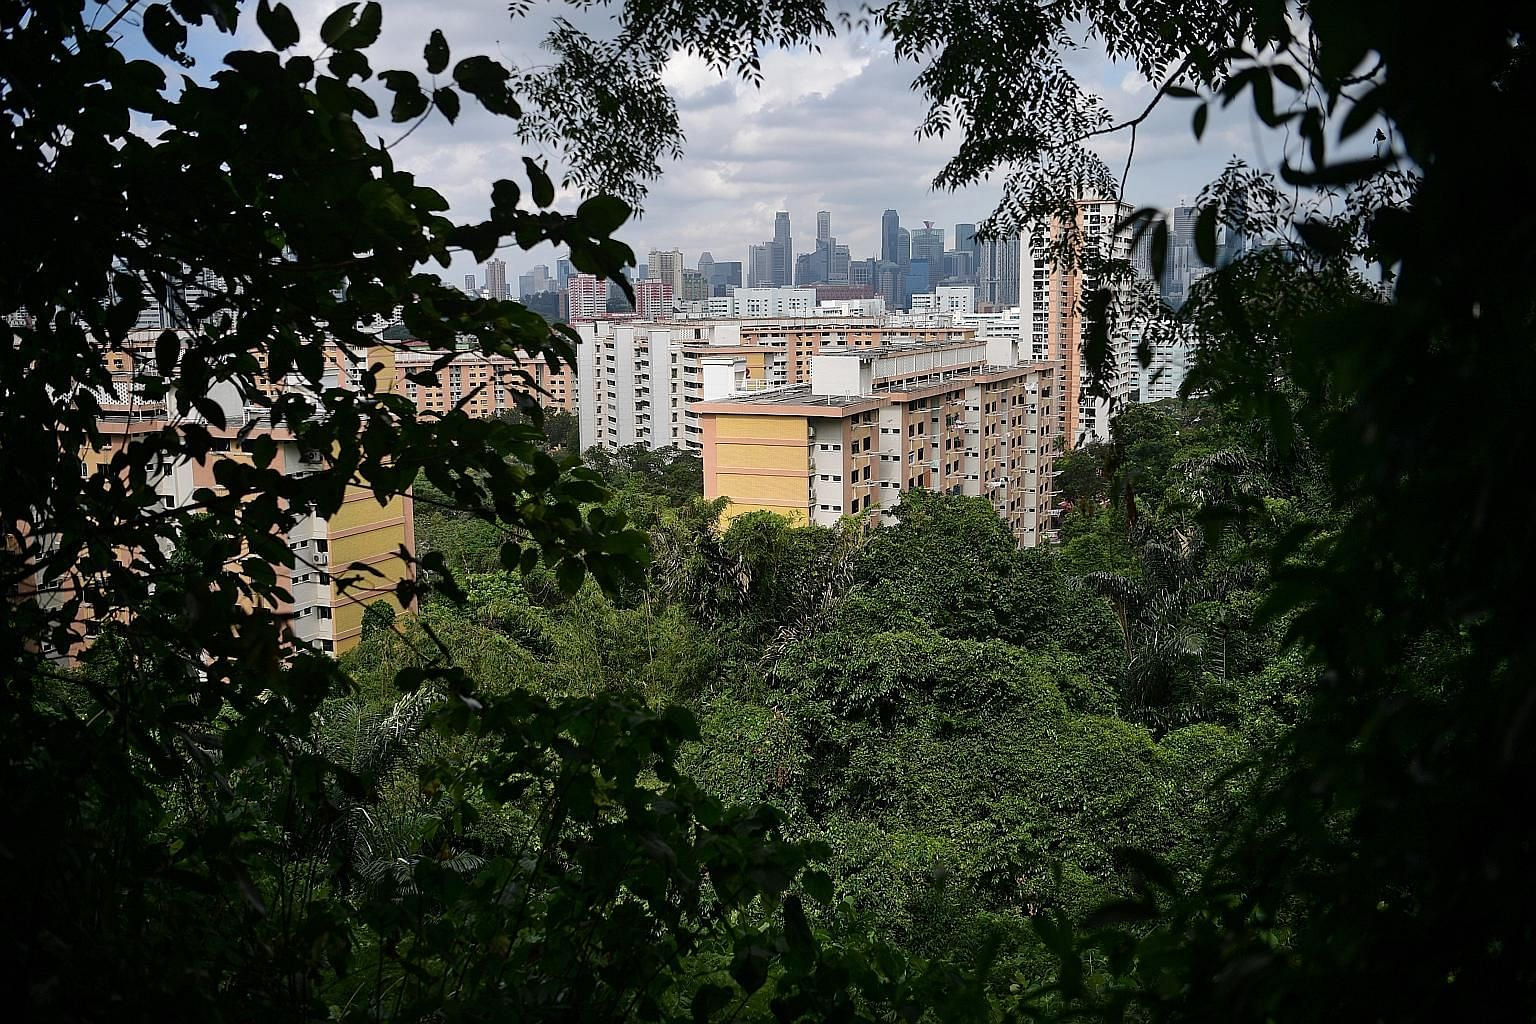 As this view from Mount Faber shows, residents are never too far from green lungs while the authorities have also ramped up the drive to get property developers to go green, by creating roof gardens for example.